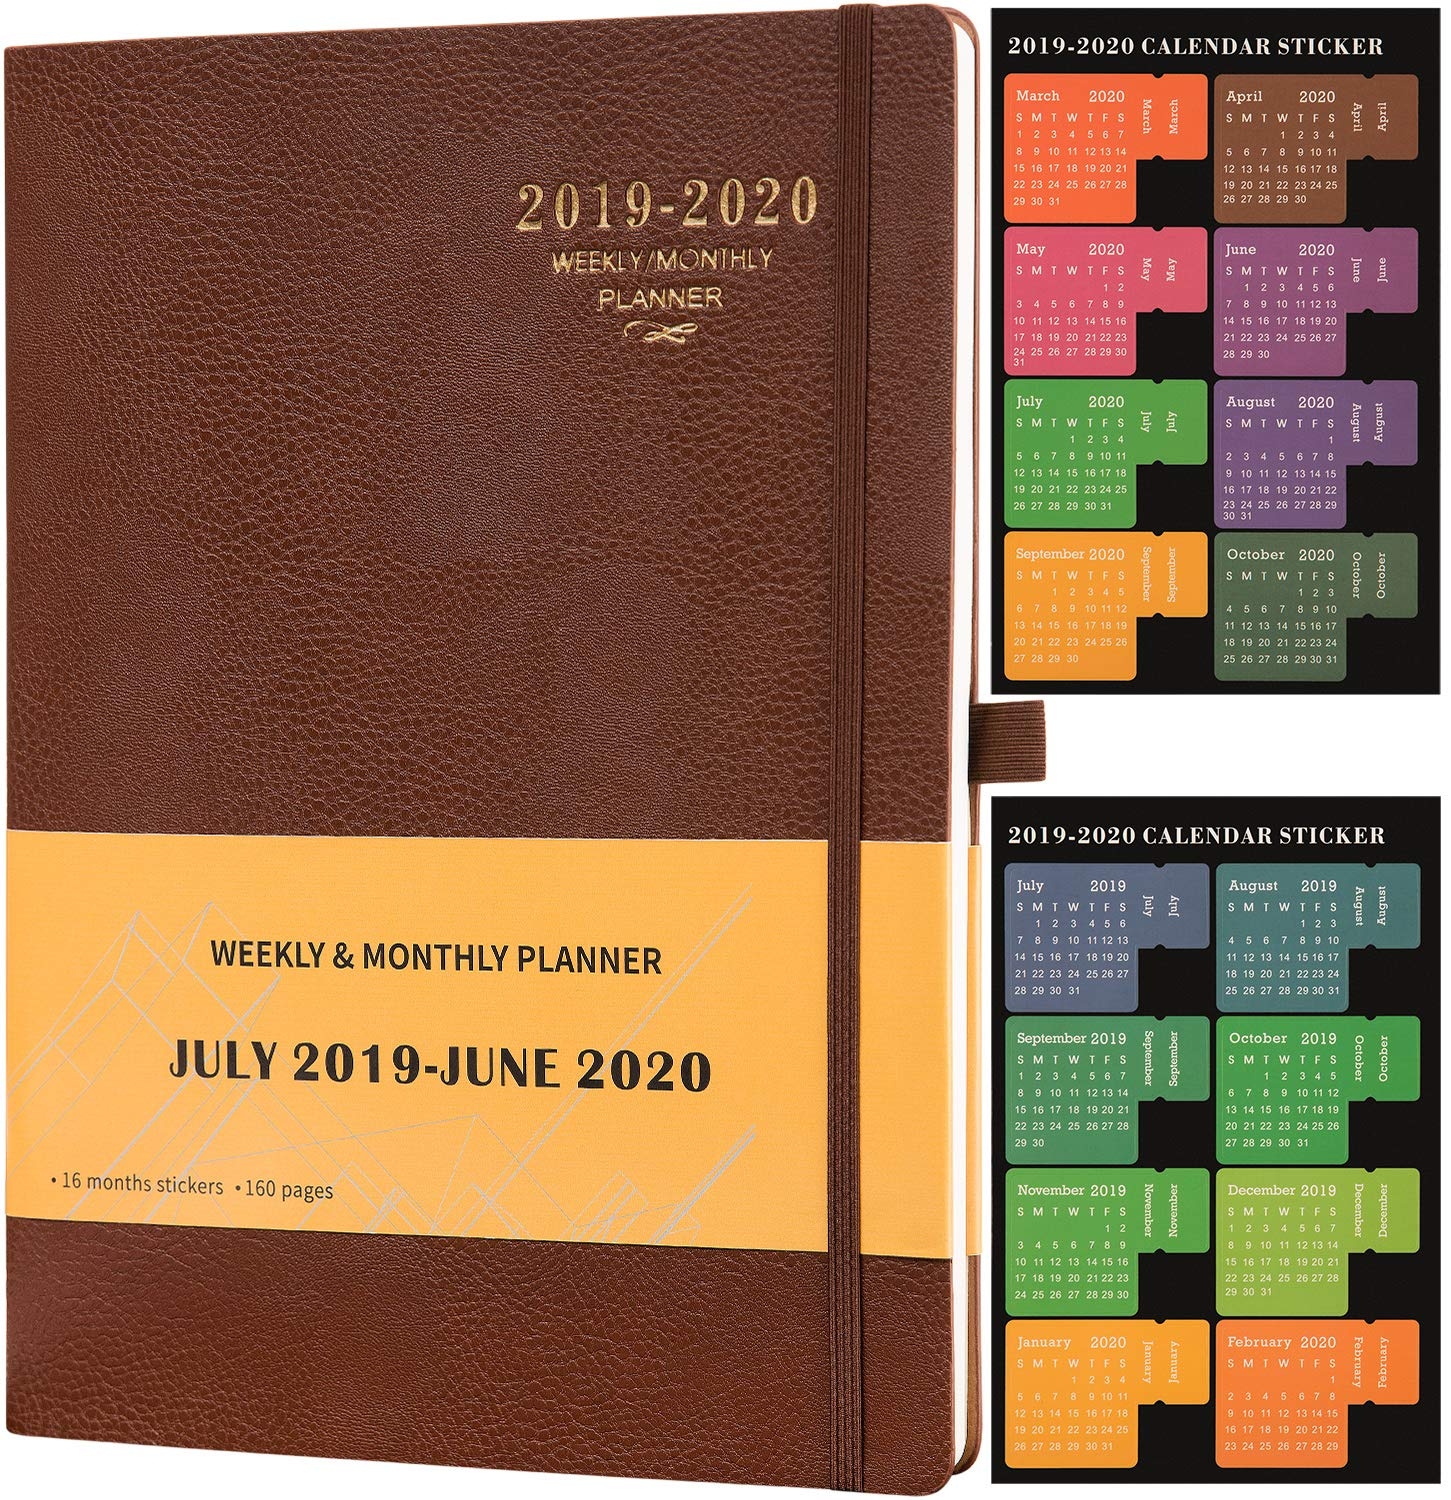 2020 Gift Ideas For Men Aged Between 26-27 Amazon.: Planner 2019 2020   Academic Weekly & Monthly Planner